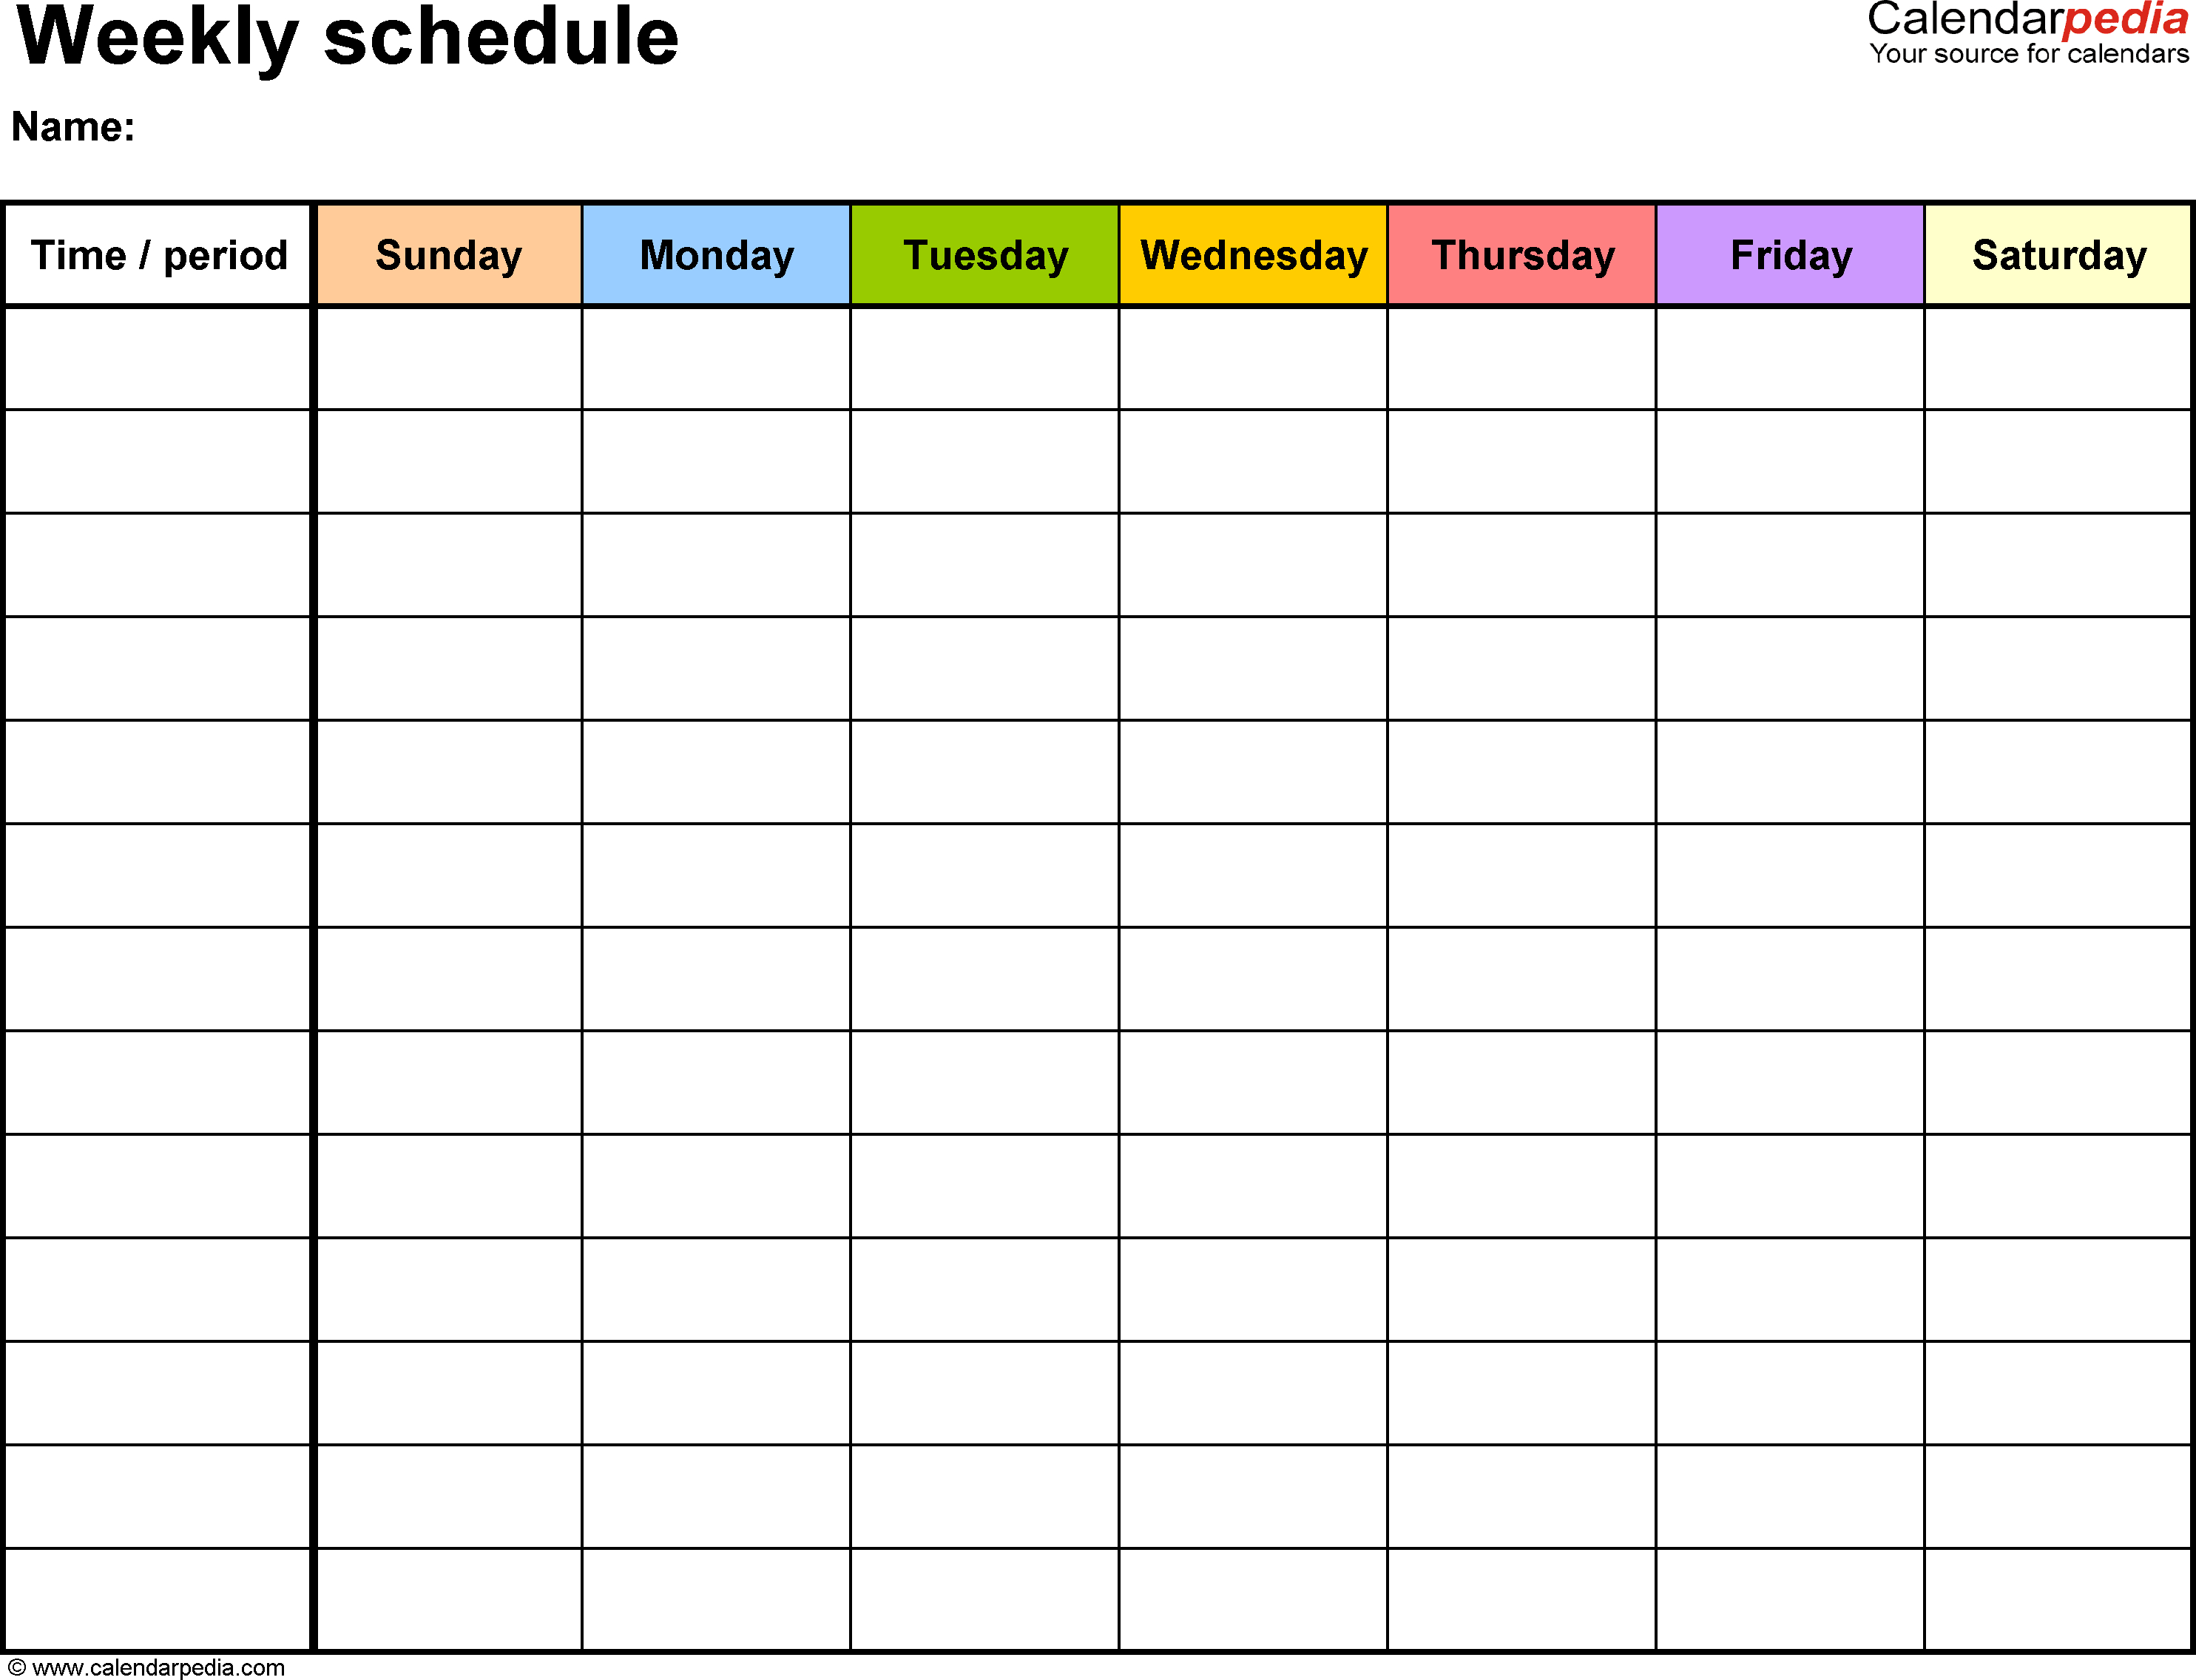 Weekly Schedule Template For Word Version 13: Landscape, 1 Sunday Through Saturday Blanl Calendar